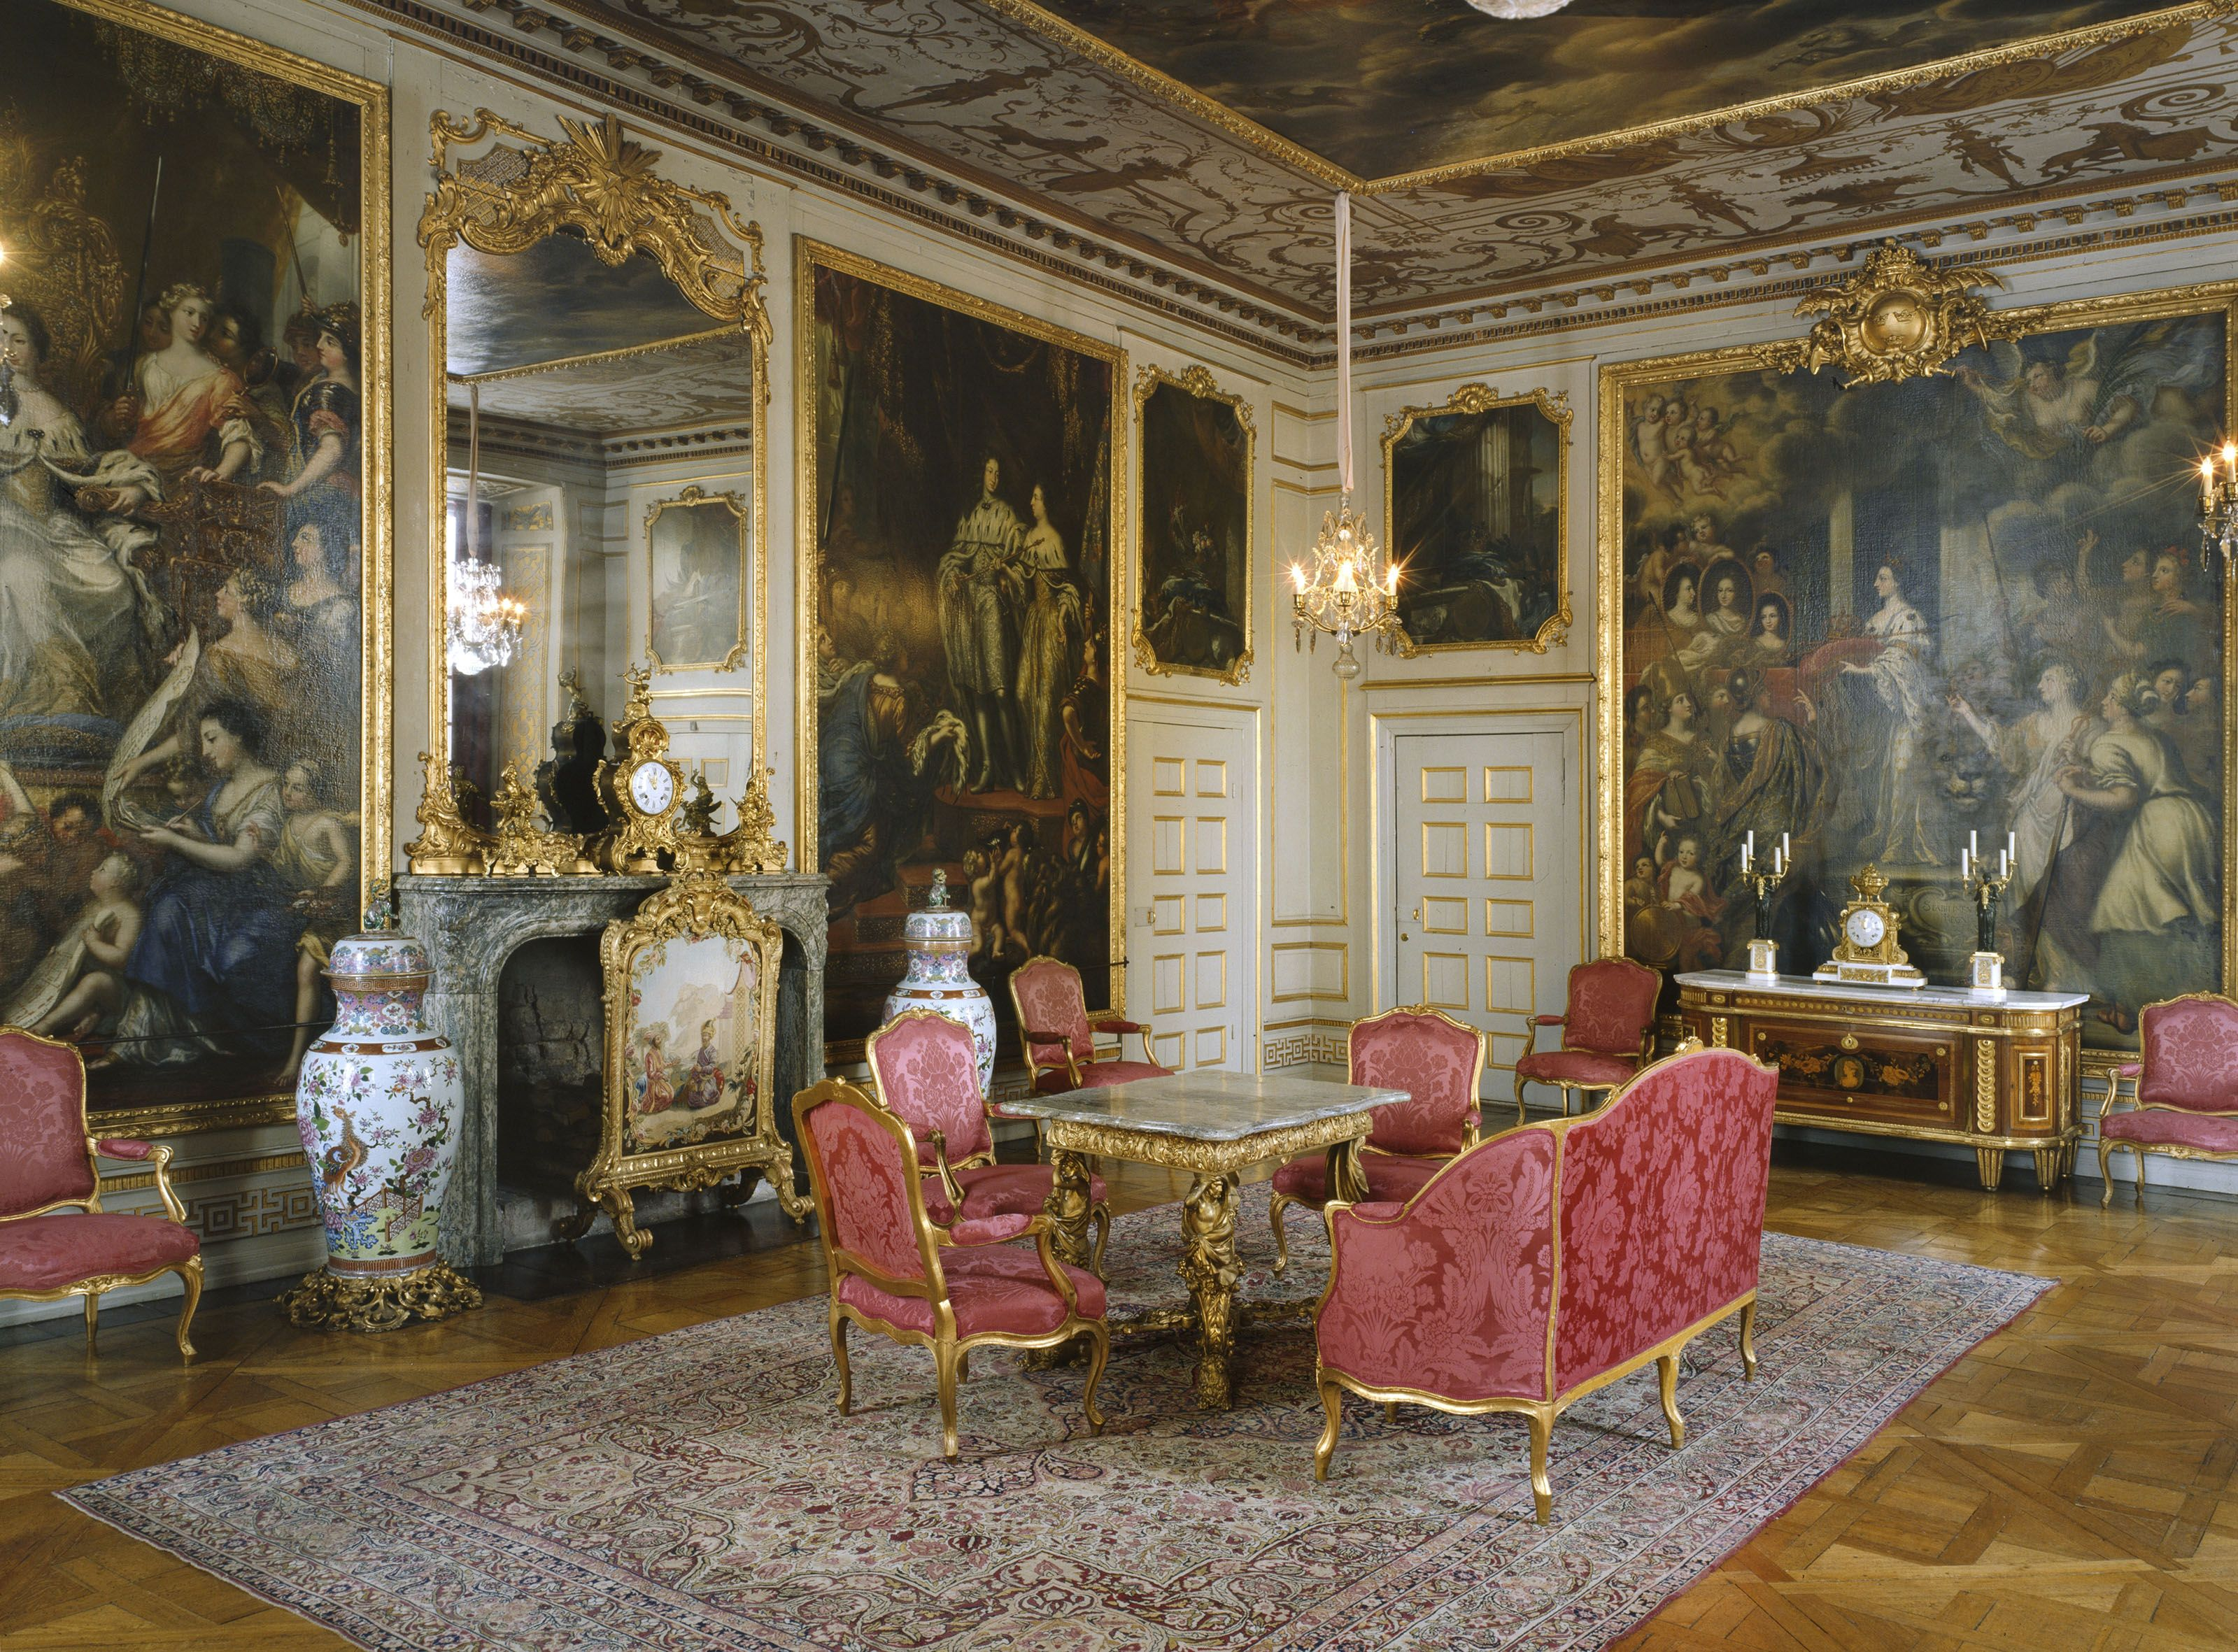 Finally swedish grandeur tiered of only swedish painted furniture and all from around 1870 drottningholm palace in sweden